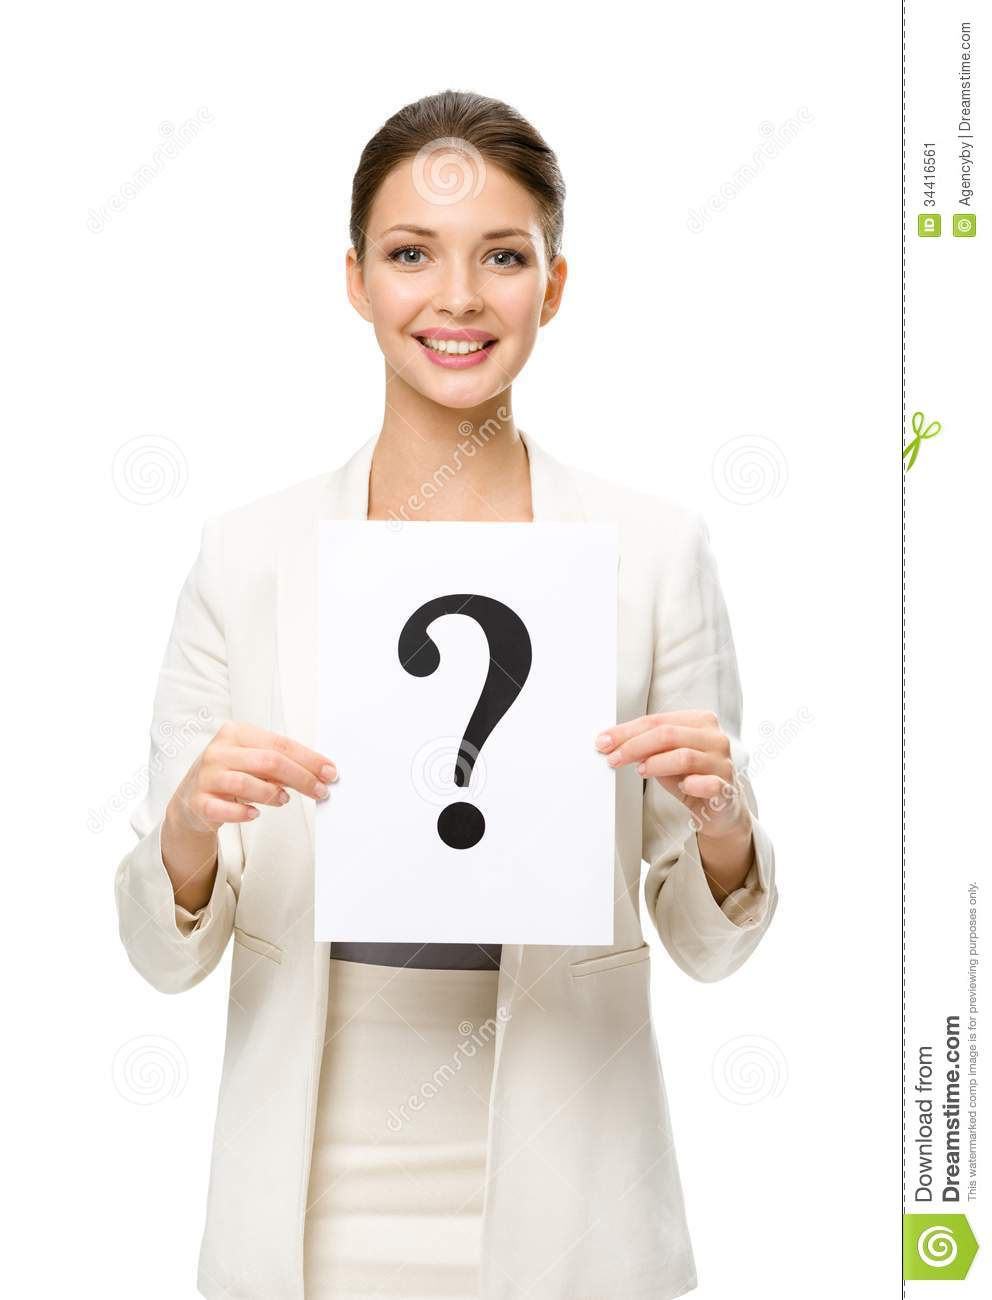 Half-length portrait of business woman with question mark